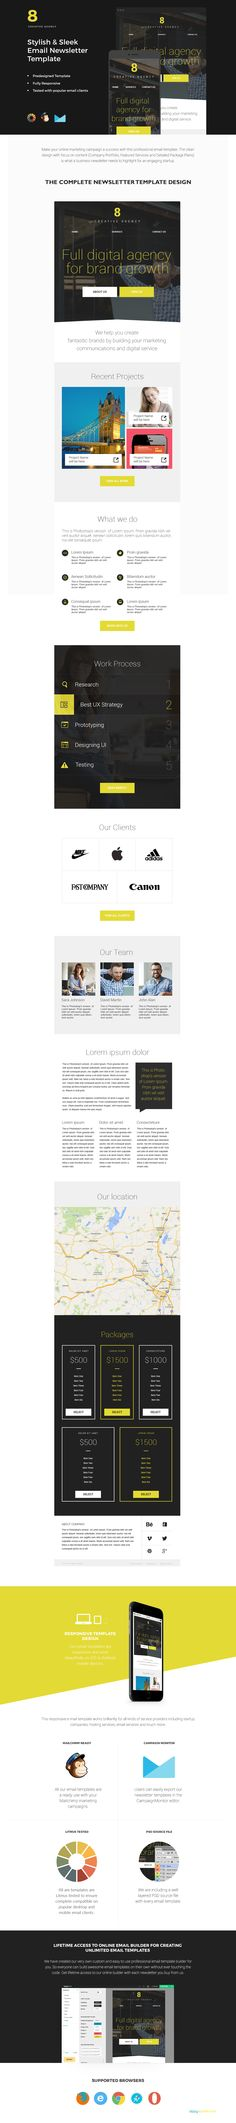 180 Absolute Best Responsive Email Templates - Aiden - Responsive - email newsletter template